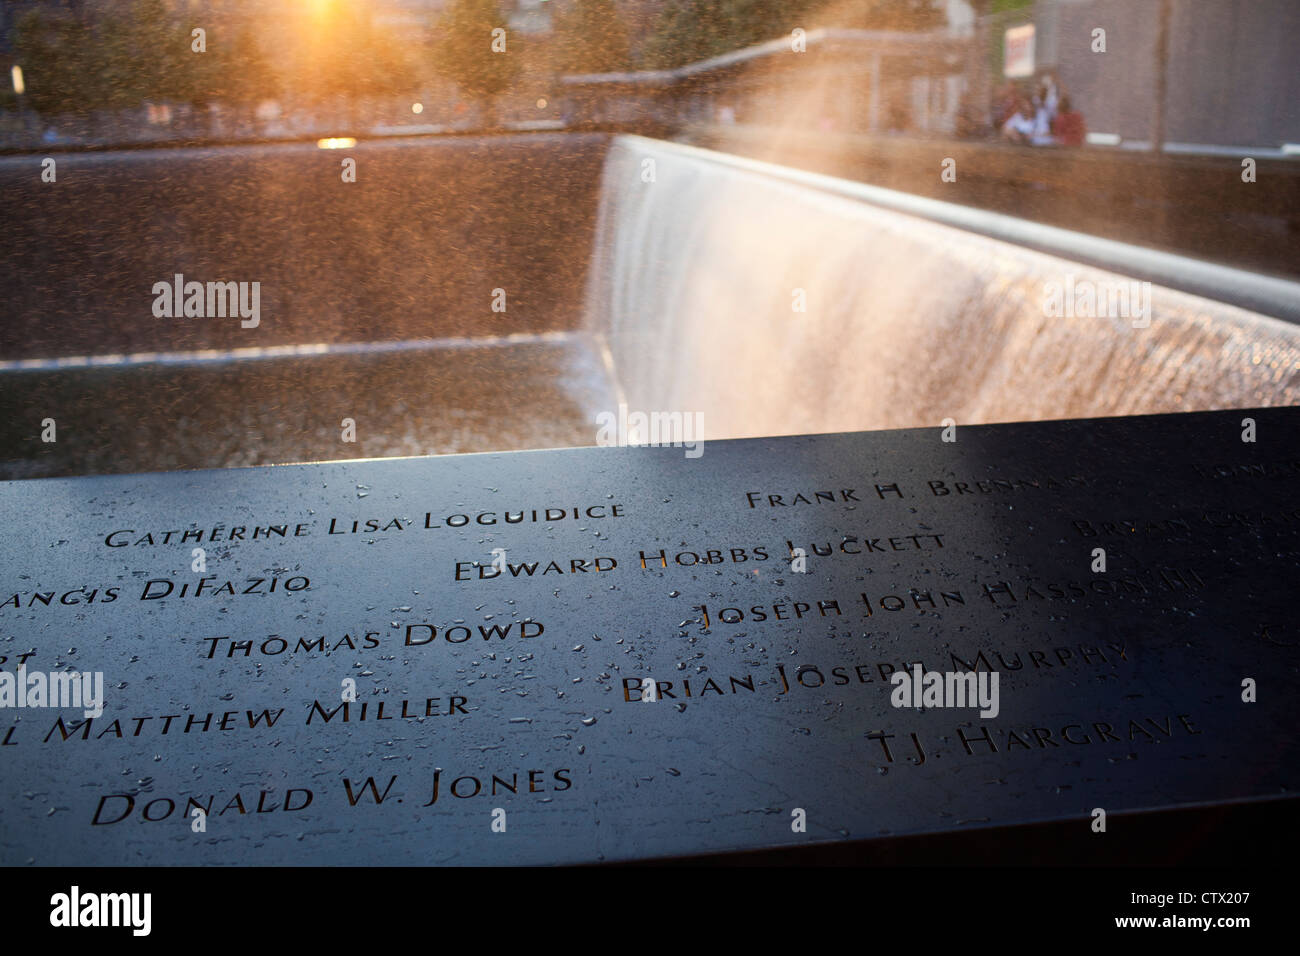 Wind picks up water and mist around the south pool at the 9-11 Memorial in New York City. - Stock Image